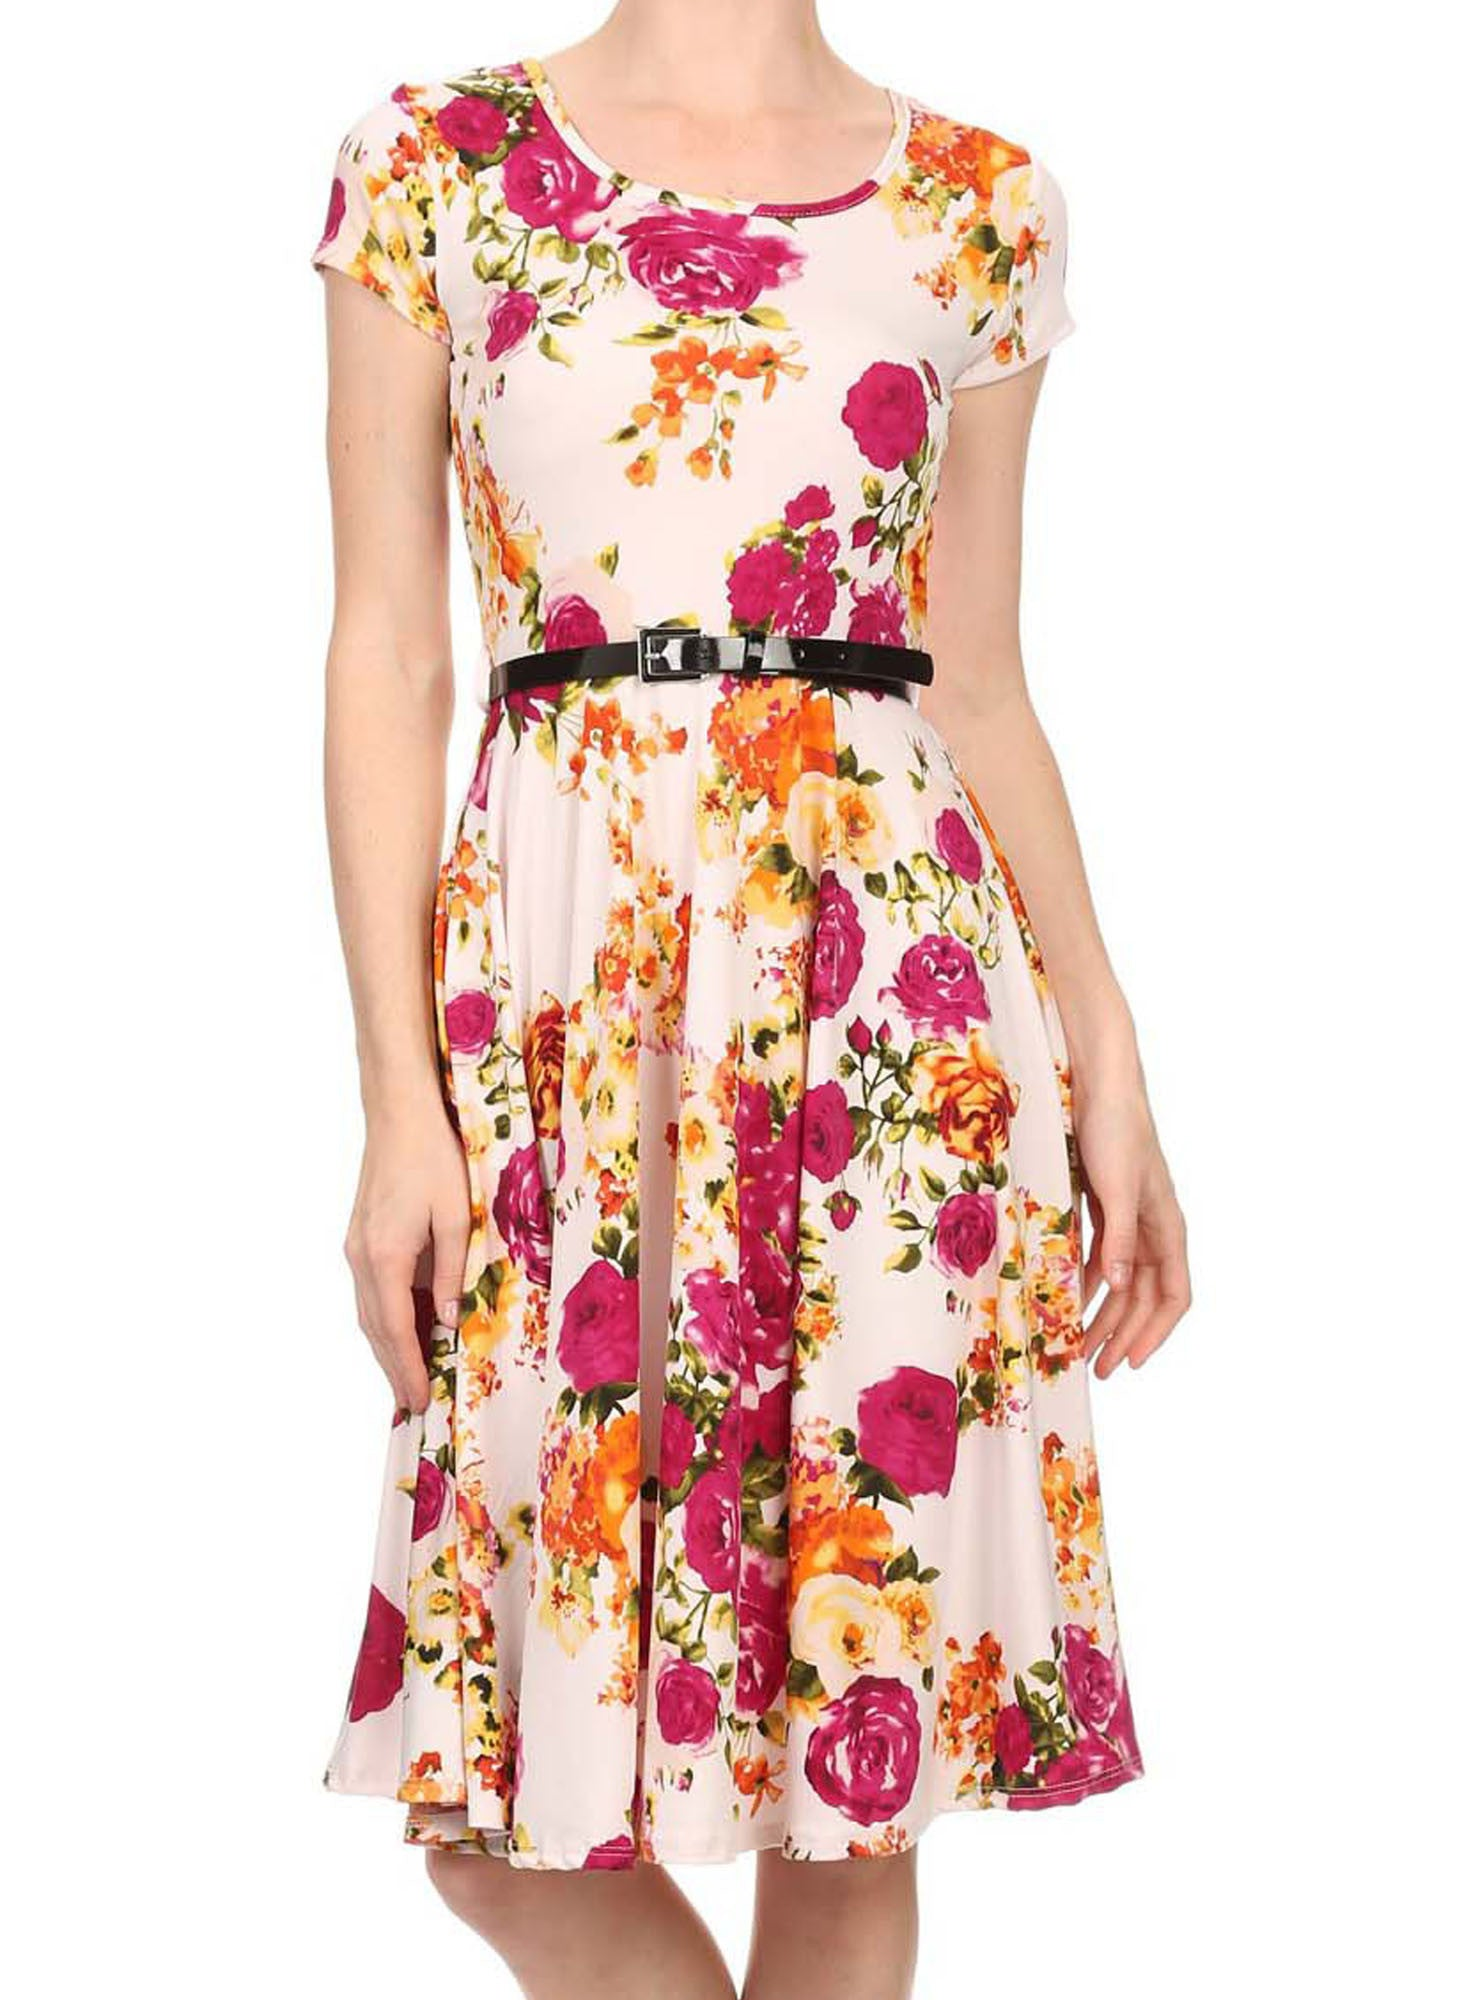 Avital Belted Slimming Day Dress (Cream Pink Floral),Dress,Avital - Discount Divas